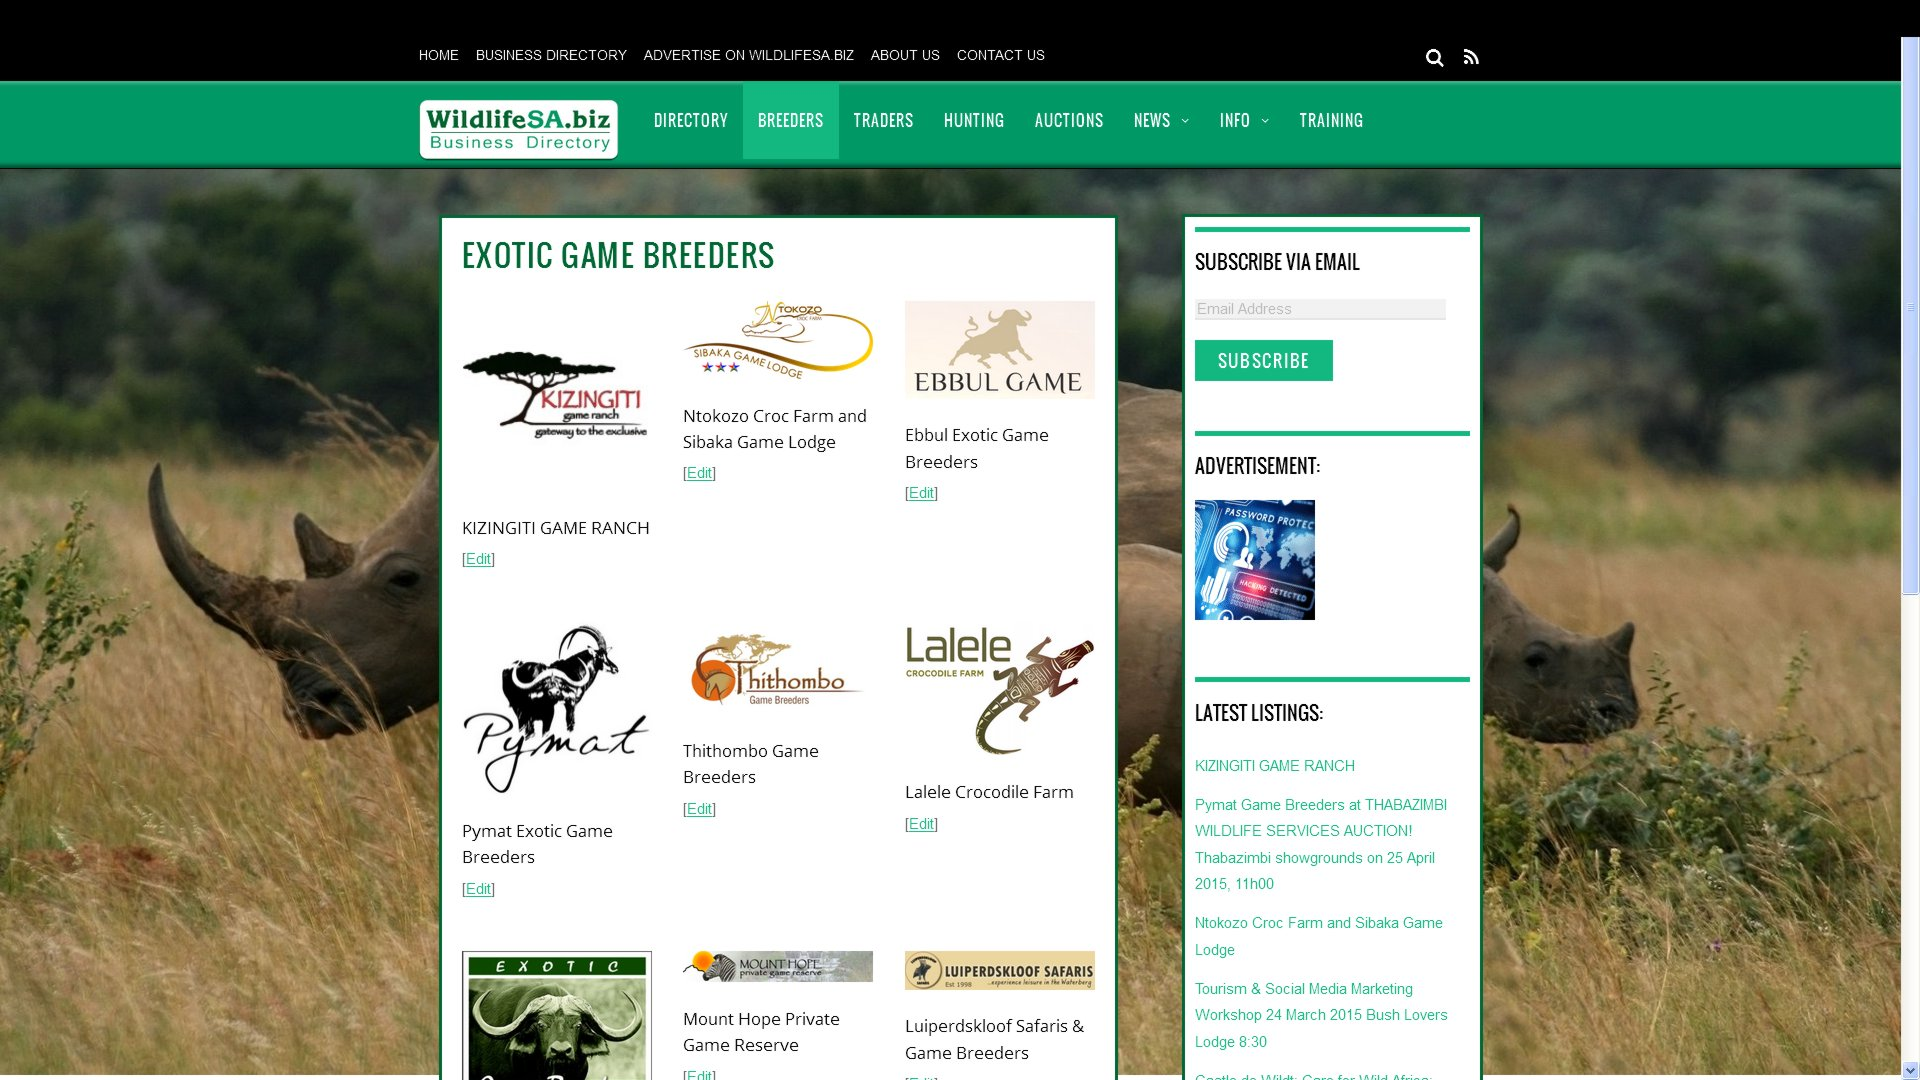 New Wildlifesa biz Business Directory for the South African